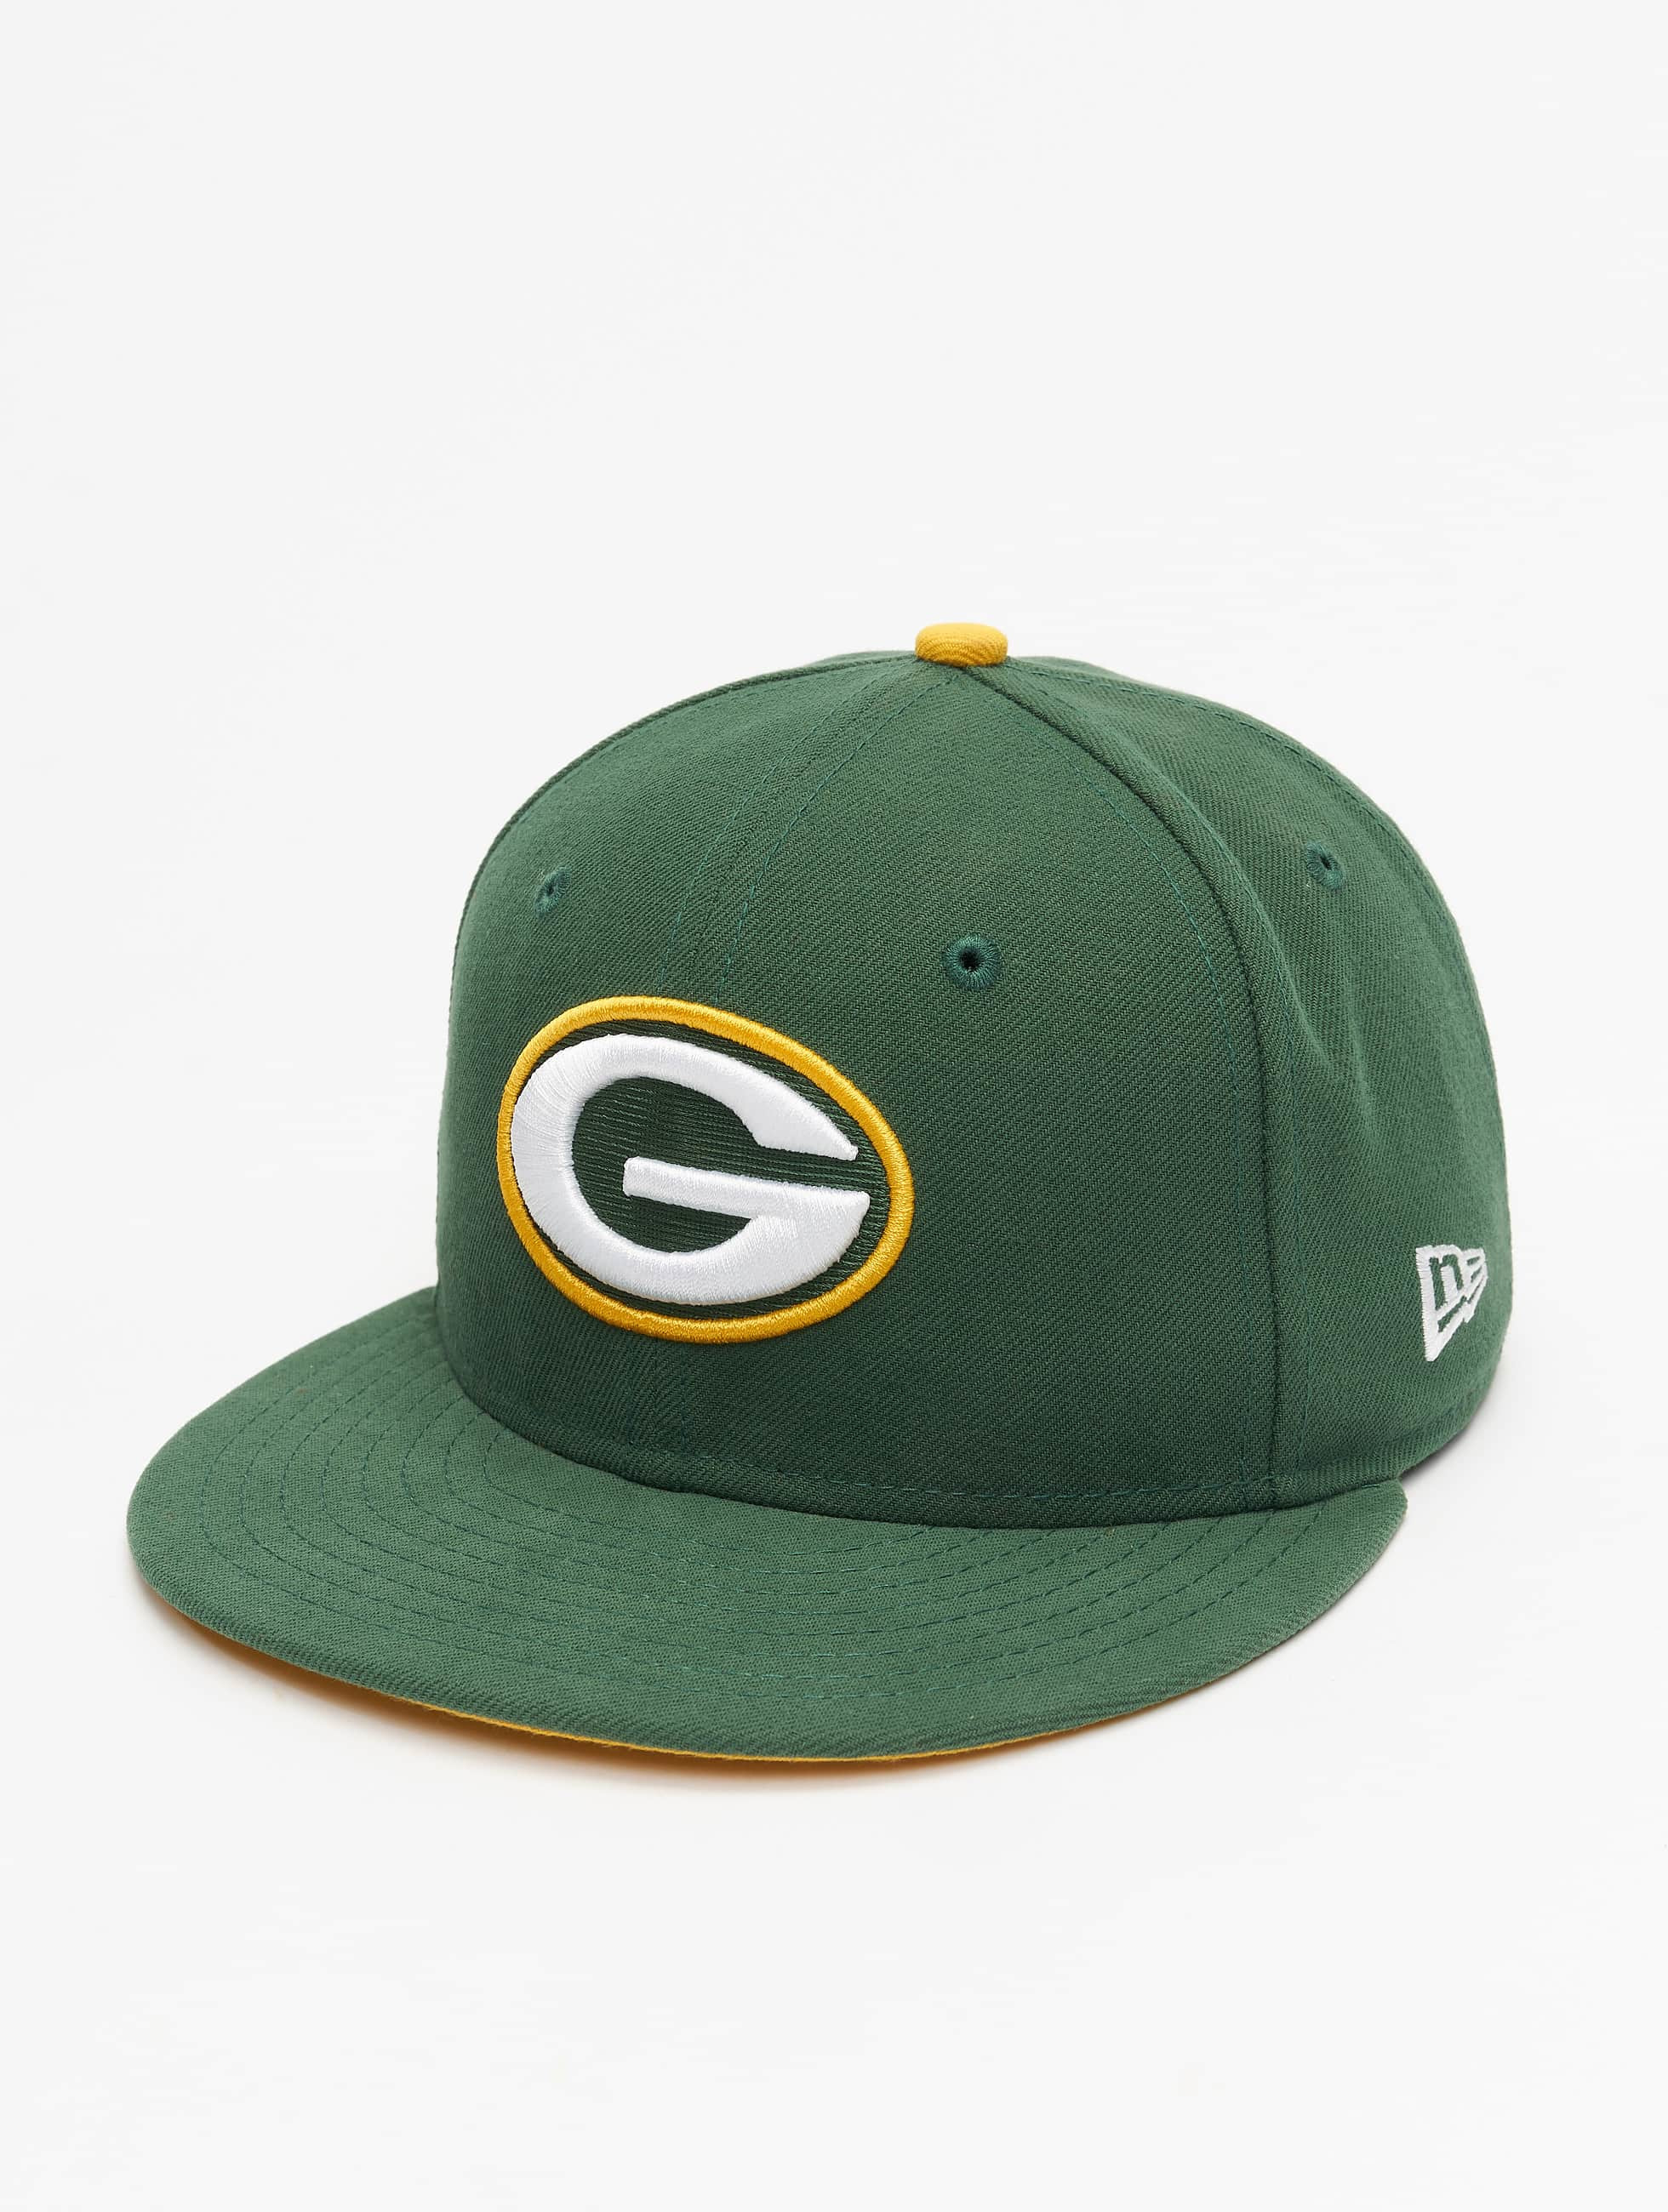 Excepcional Green Bay Packers Uñas Embellecimiento - Ideas de Pintar ...